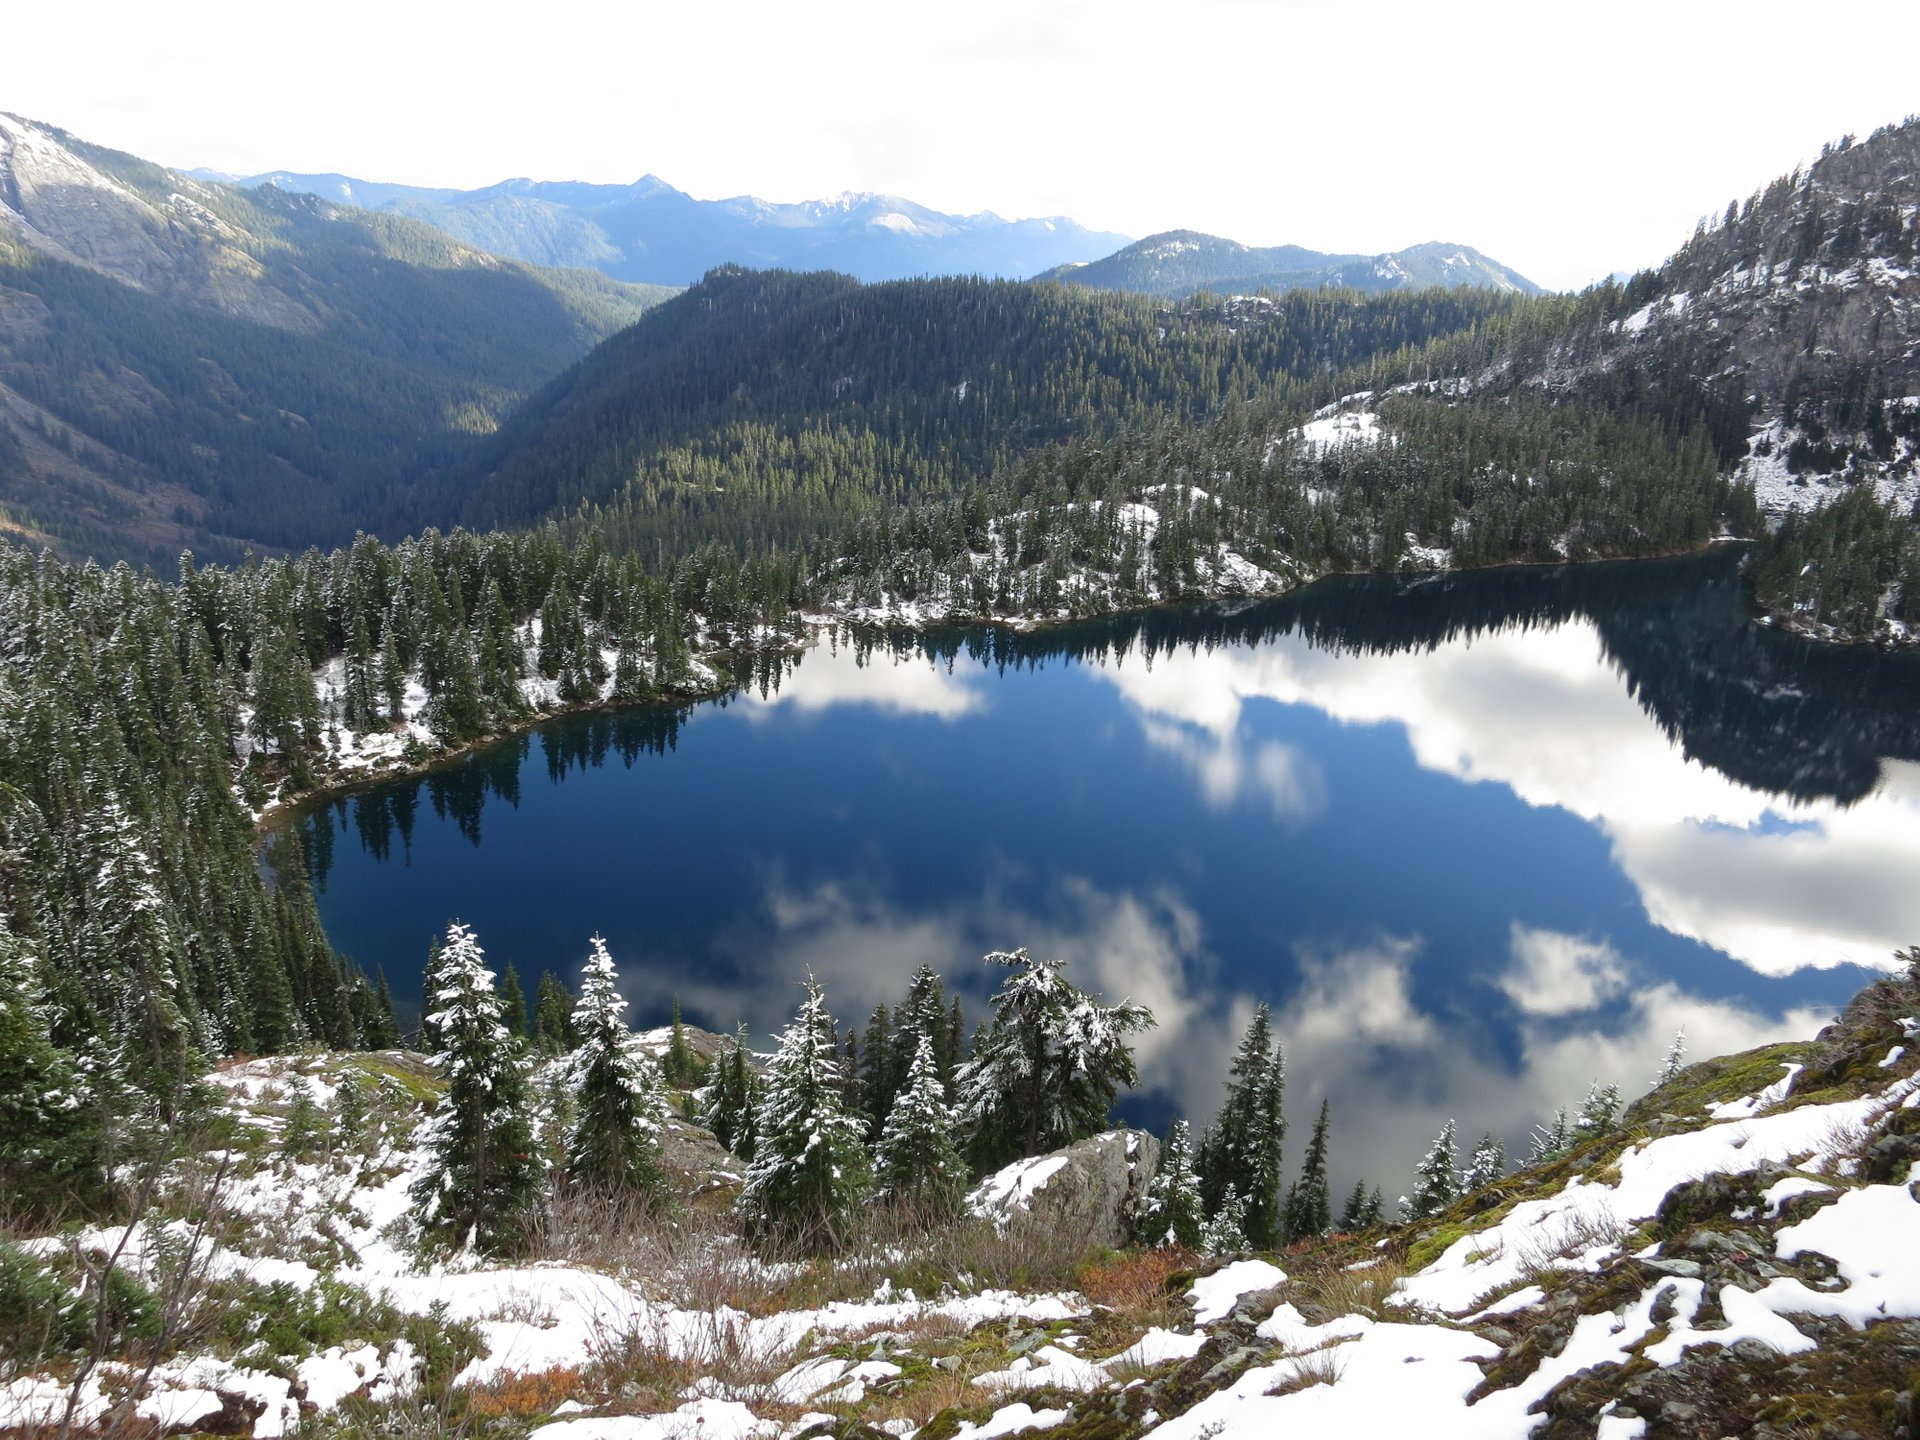 Rachel Lake as seen from above hiking up the ridge to Rampart Lakes in the Cascade mountains of Washington 2020